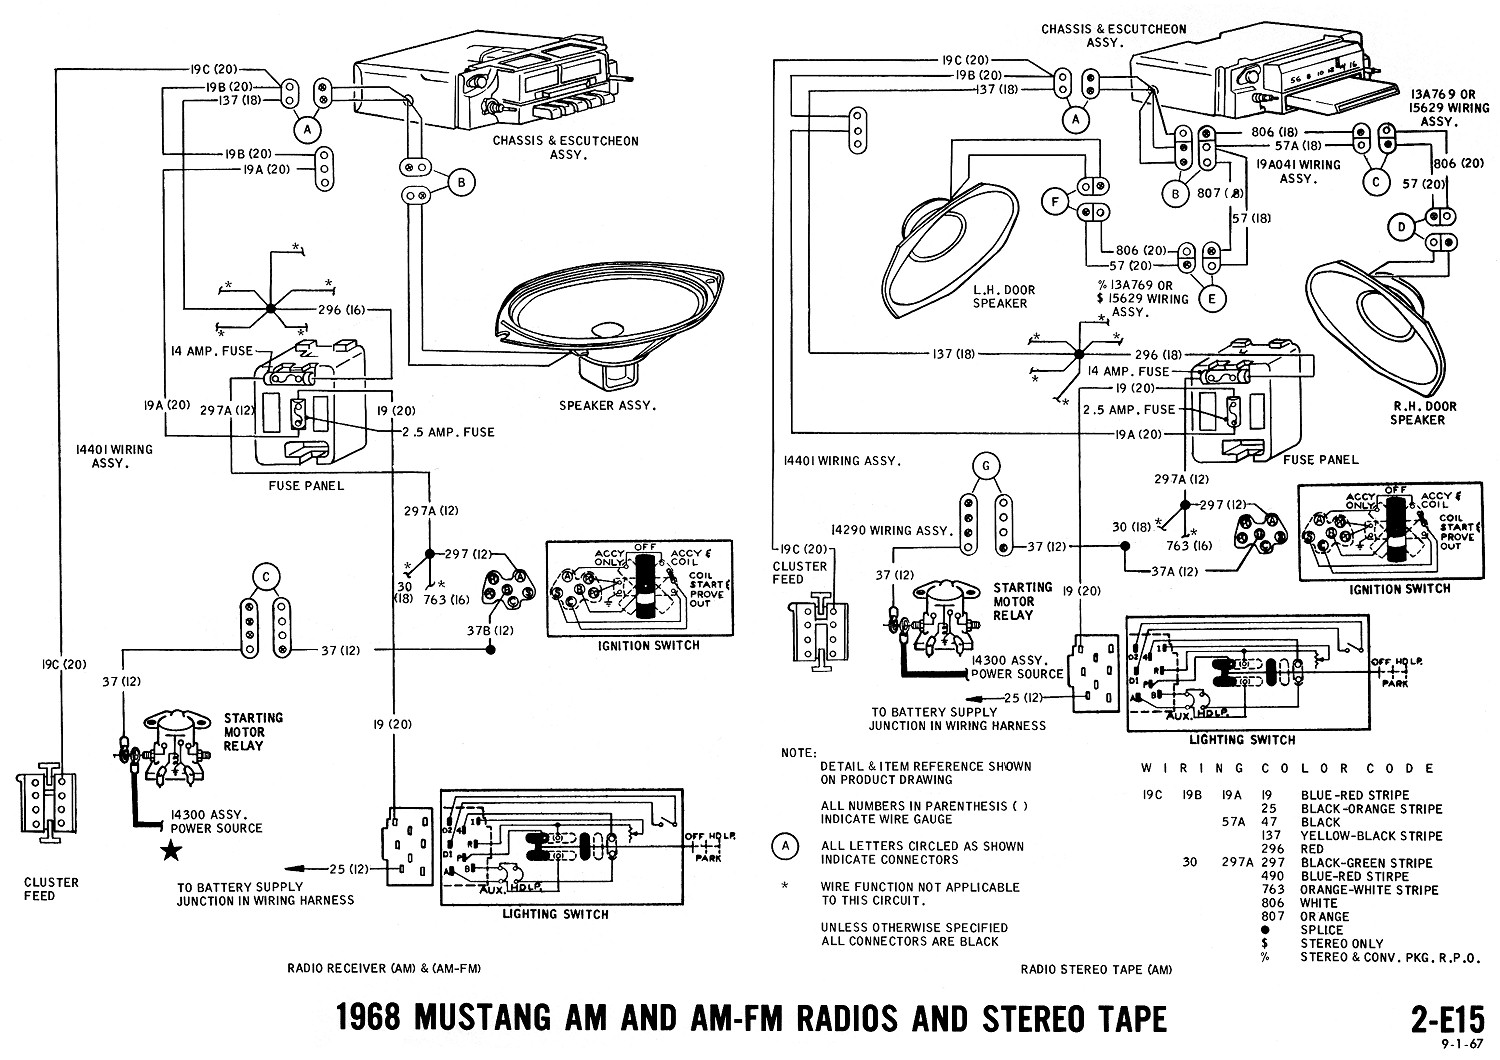 1965 mustang headlight wiring diagram wiring diagrams and schematics 66 mustang wiring diagram wellnessarticles